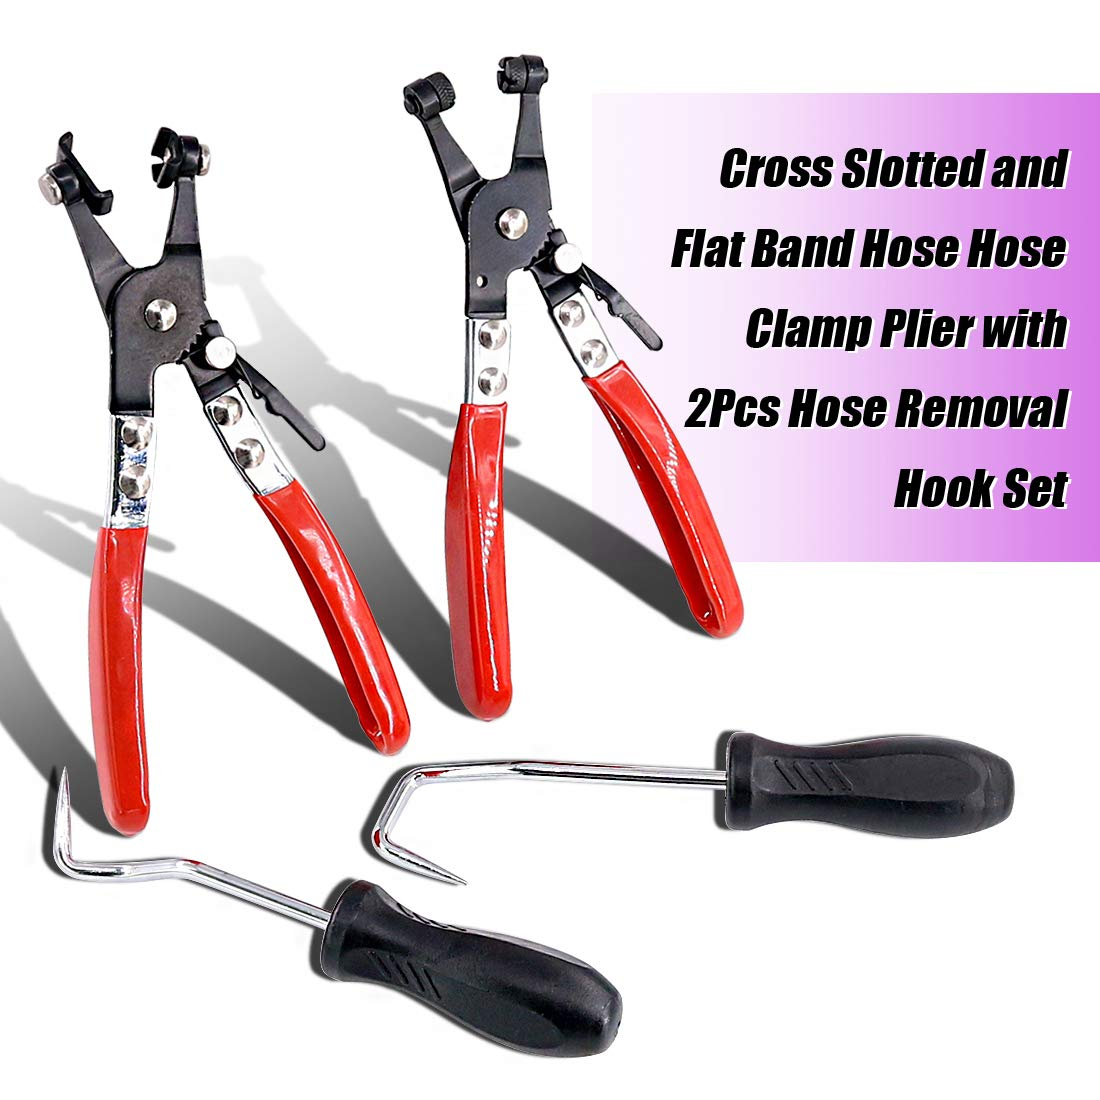 Swpeet 4Pcs Hose Clamp Plier Set Including 2Pcs Cross Slotted and Flat Band Hose Hose Clamp Plier with 2Pcs Hose Removal Hook Set Perfect for Hose Installations of Low Radiators